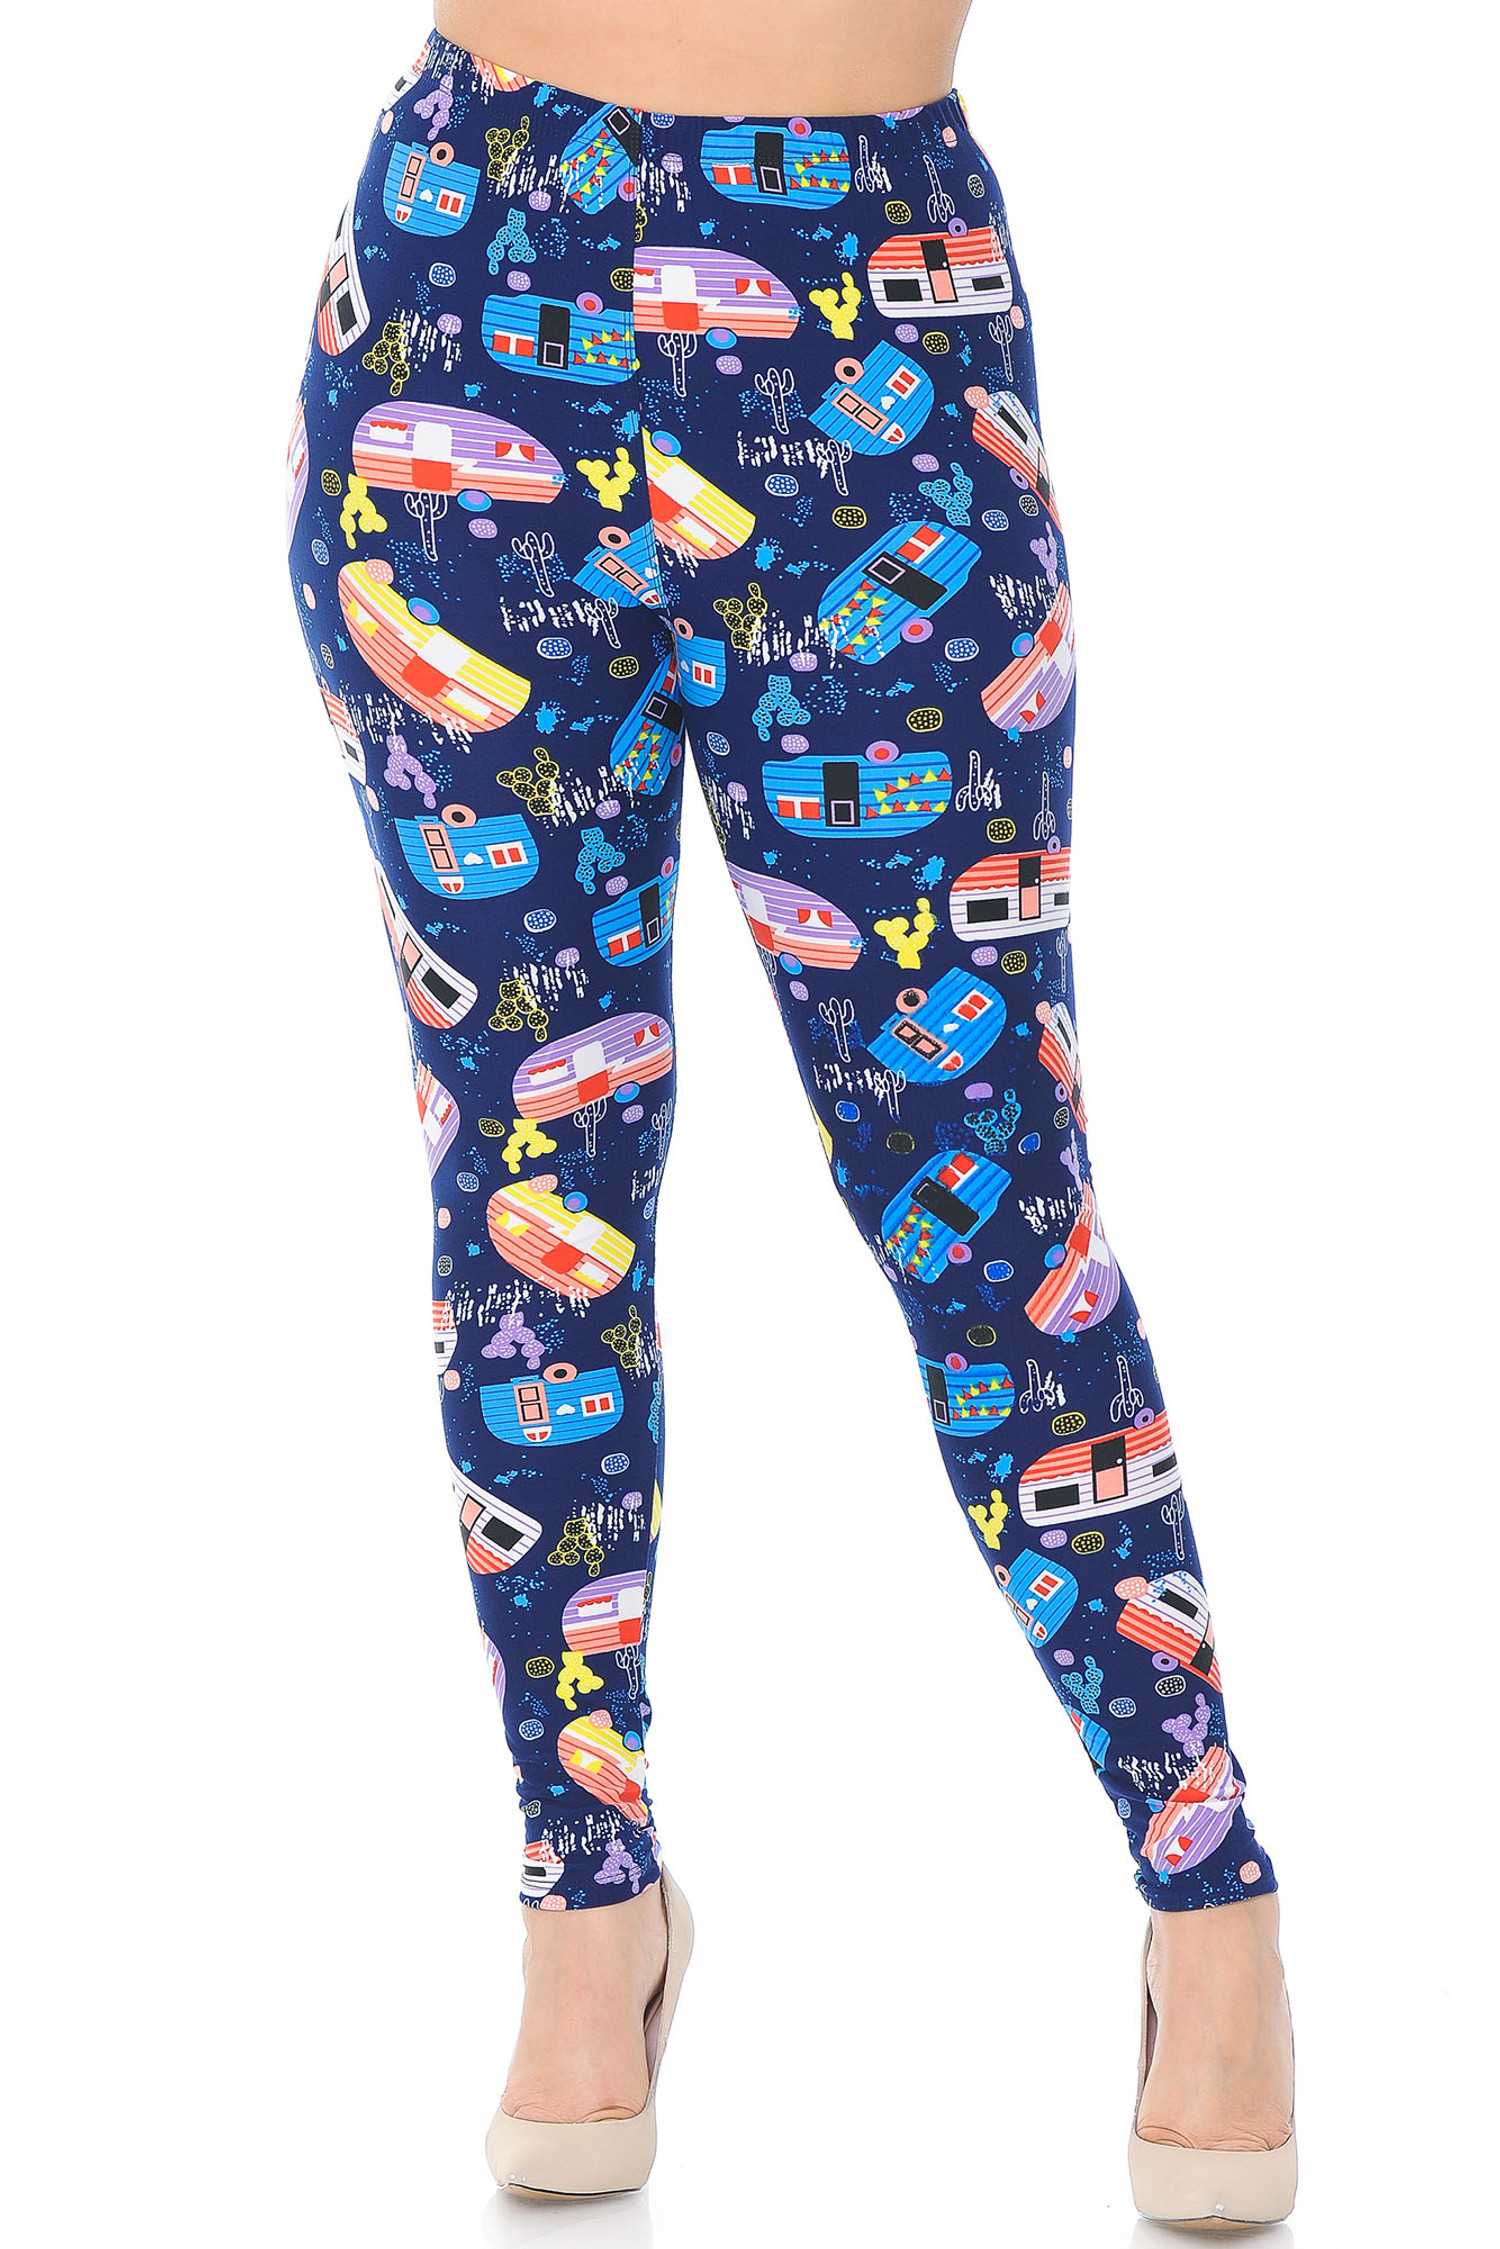 Soft Brushed Retro Campers Extra Plus Size Leggings - 3X-5X